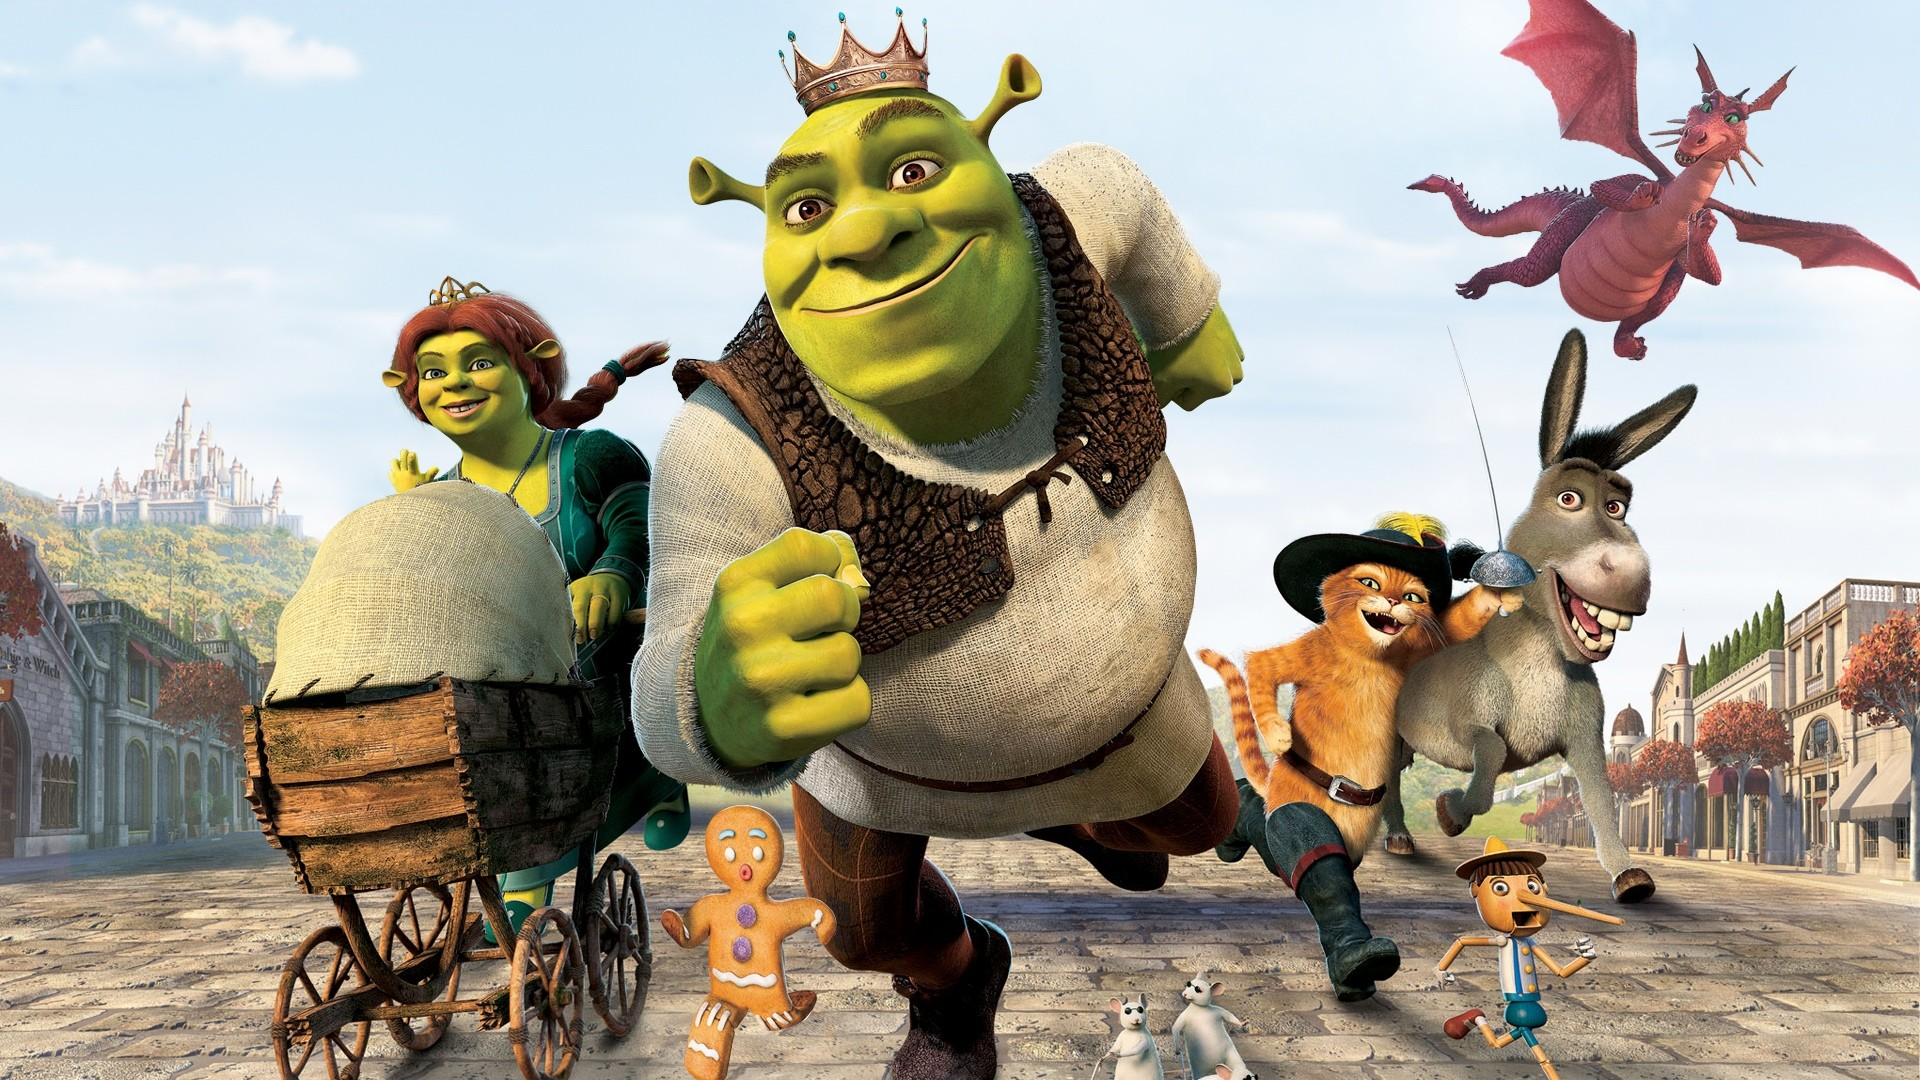 Res: 1920x1080, Shrek the Third HD Wallpaper | Background Image |  | ID:813519 -  Wallpaper Abyss